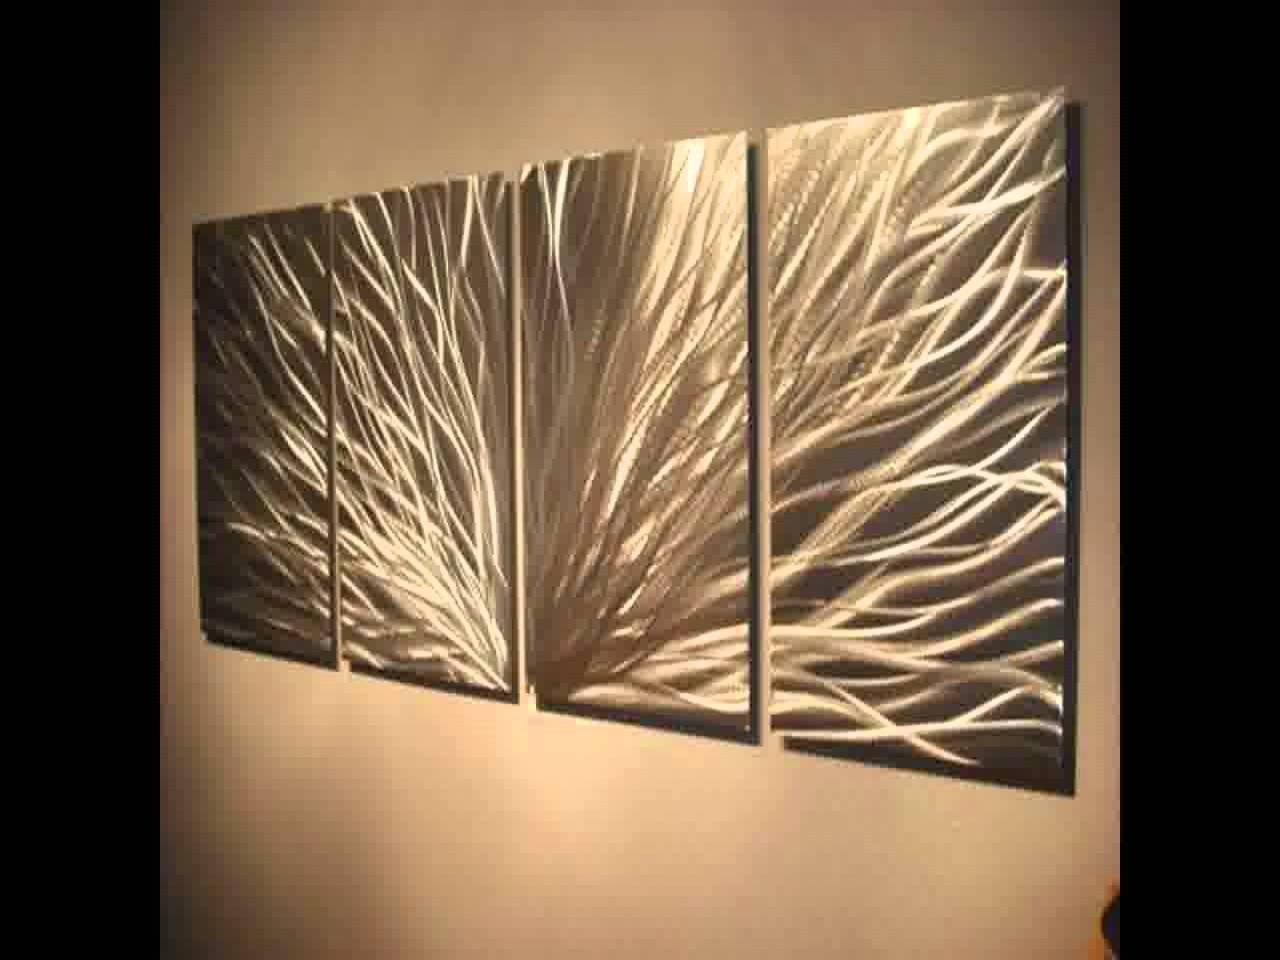 Wall Art For Men Design Ideas – Youtube Throughout Wall Art For Guys (View 6 of 20)